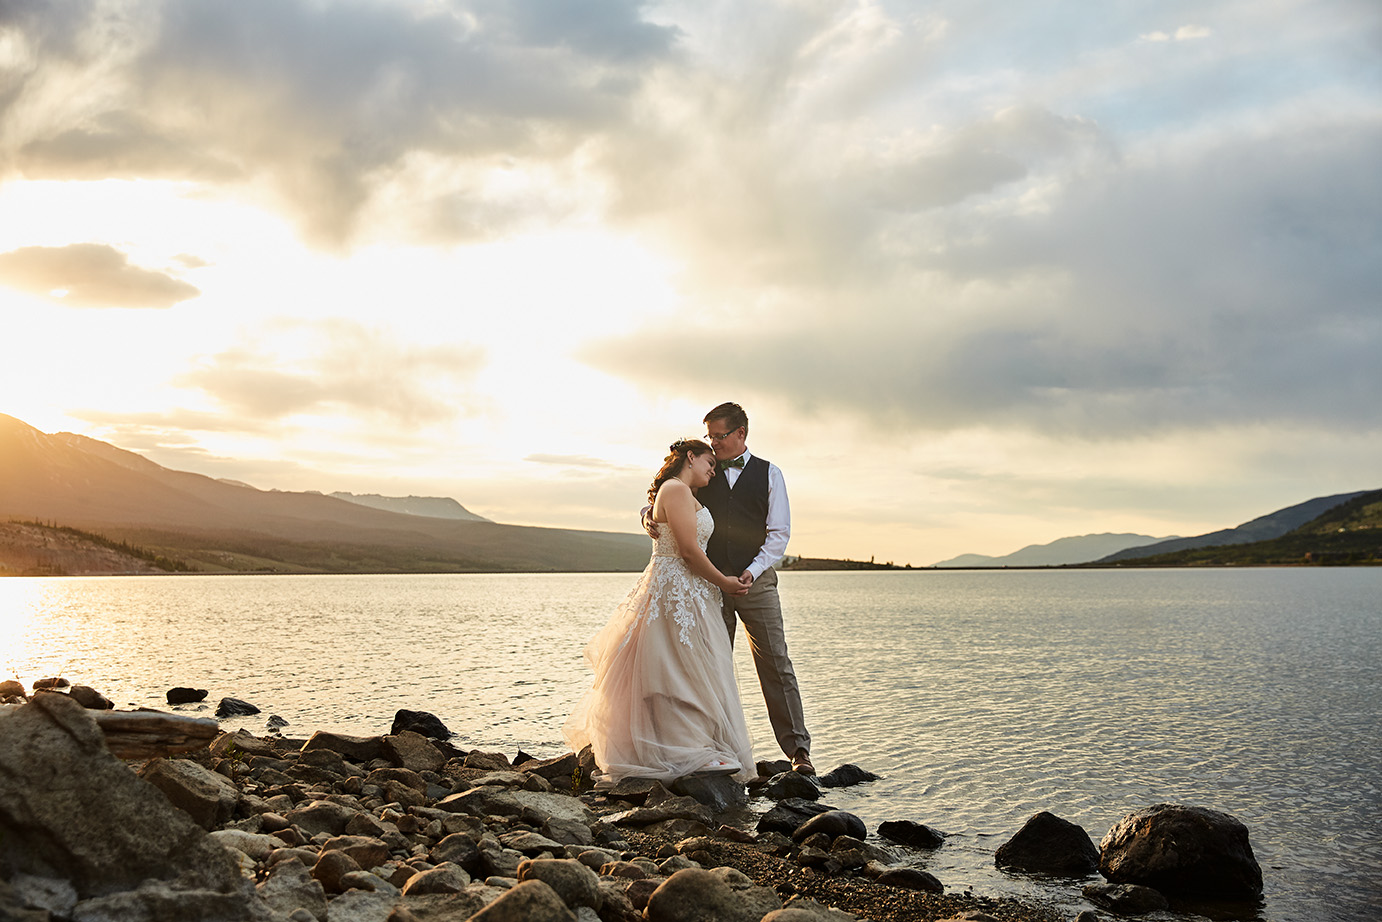 Windy Point Campground Wedding - Lake Dillon, CO | Floral Sneakers | Wedding Pie | Flower Girl Dog | Ring Bearer Dog | Lake Family Photos | Bow-Ties | Sunset on the Lake